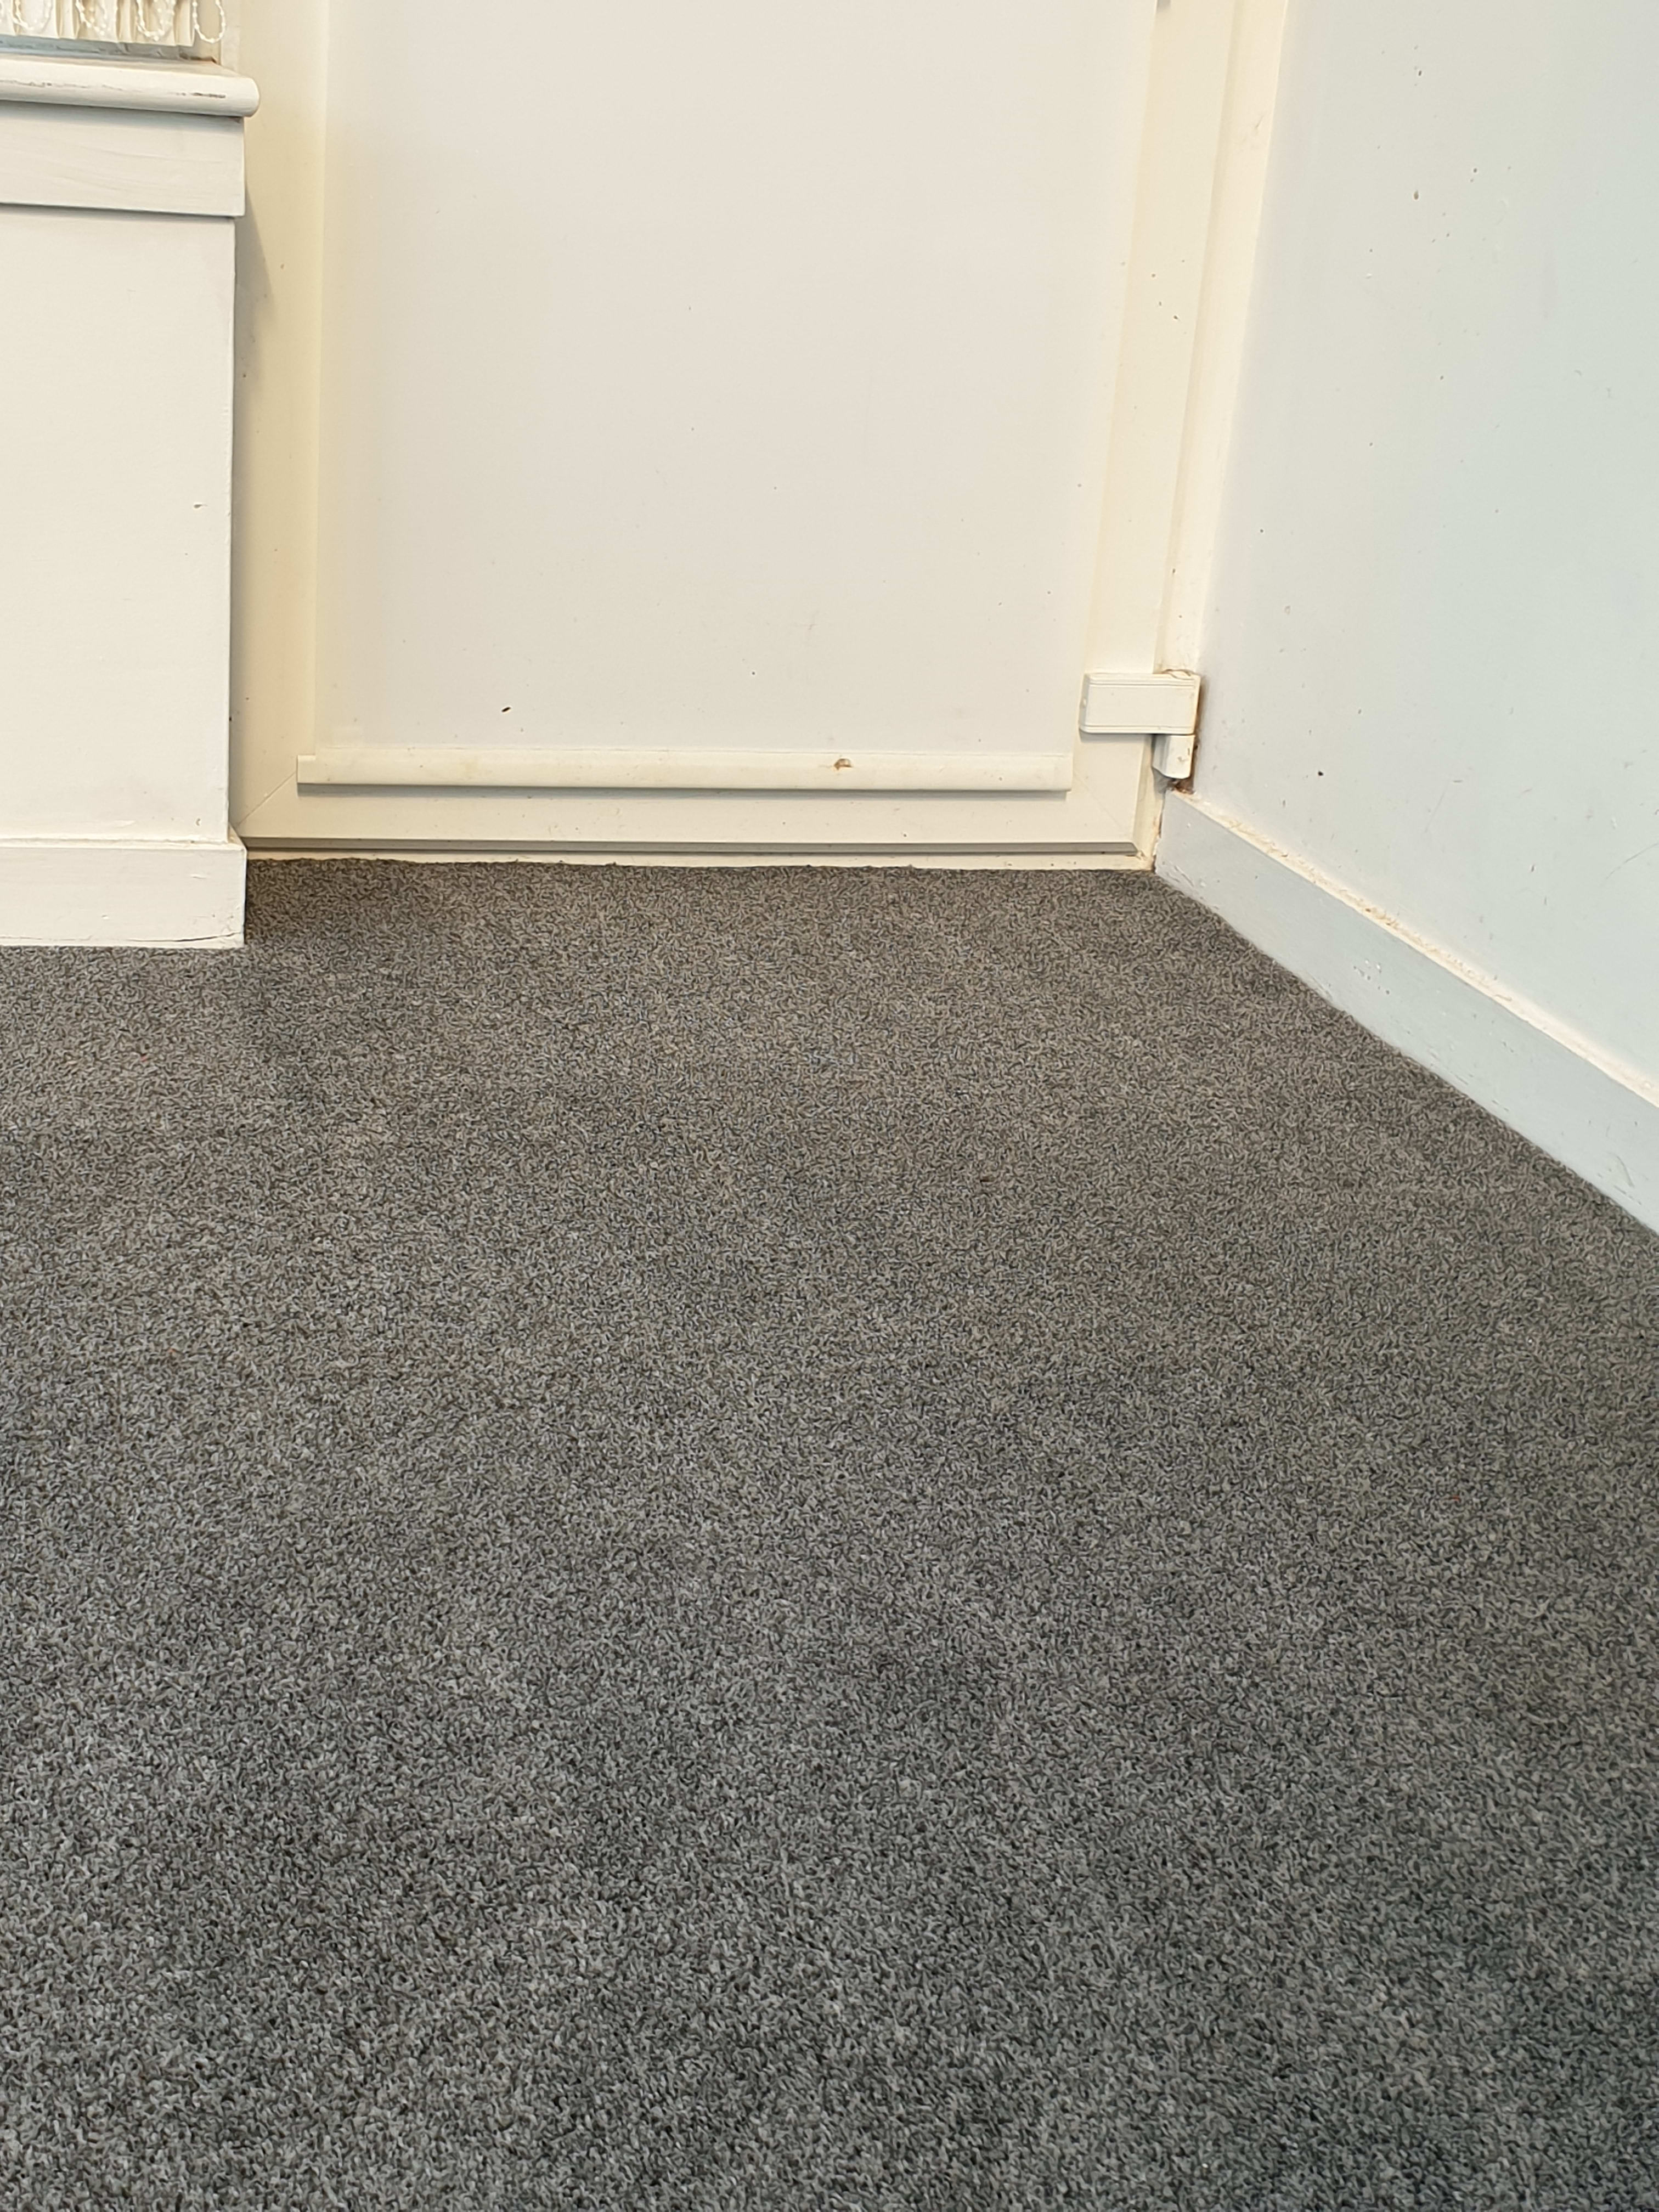 Cleaner Carpets And Upholstery